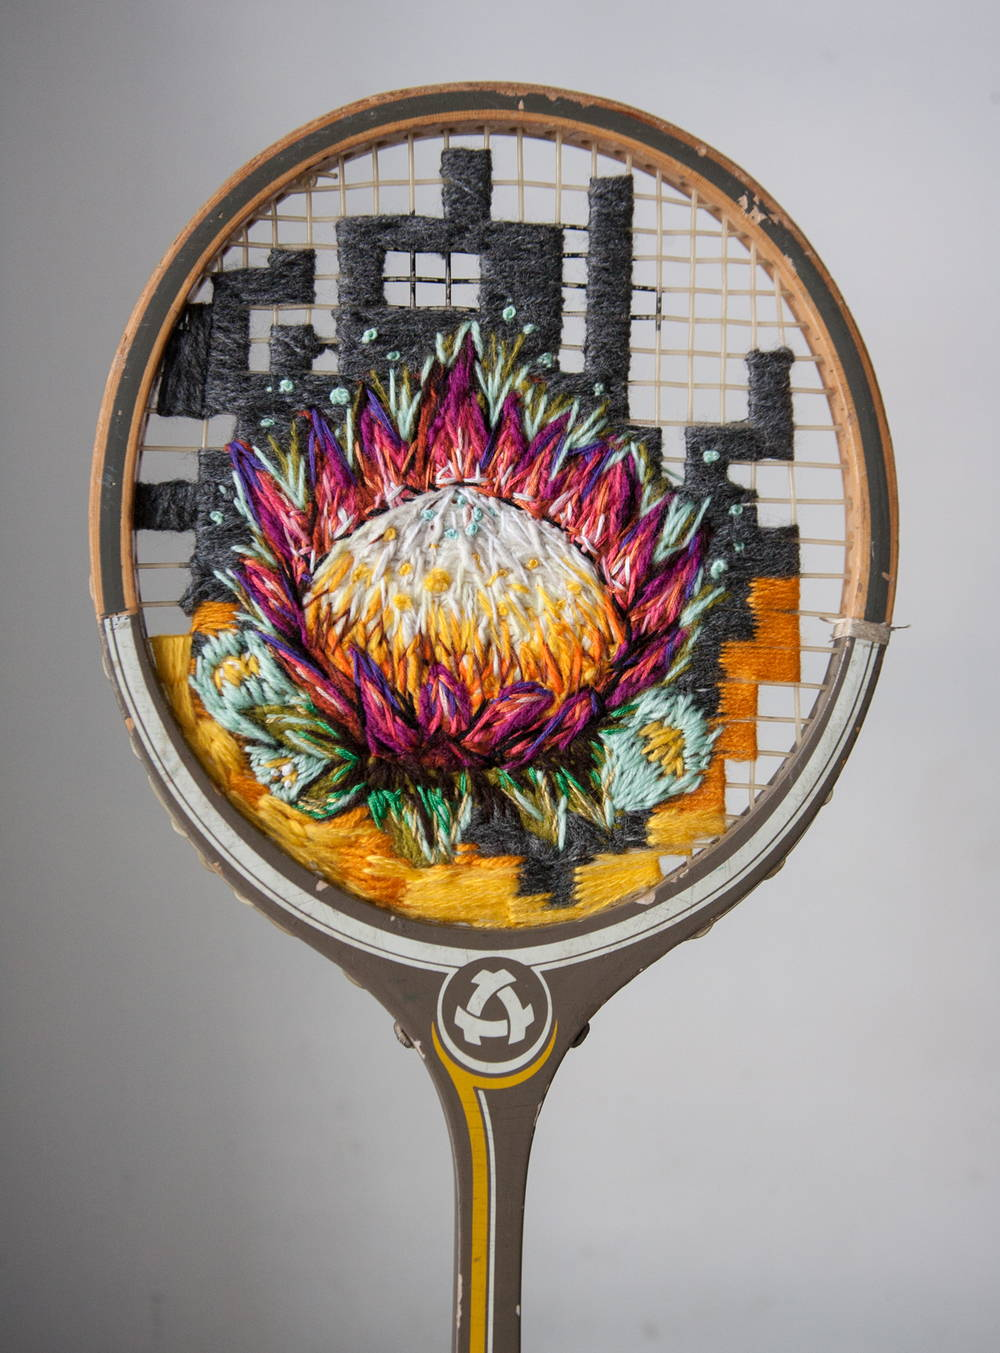 Embroidery-on-a-tennis-racquet-just3ds.com-6